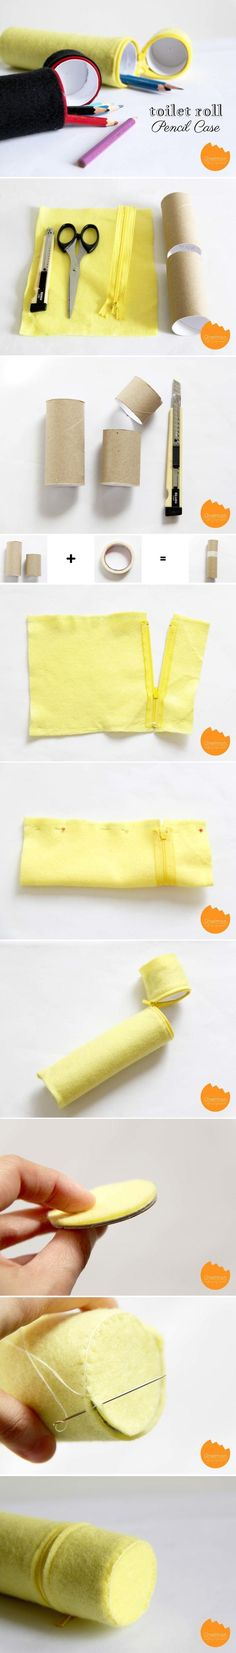 #Felt, #Craft, #Fieltro, #Manualidades DIY Felt Toilet Roll Pencil Case. Estuche hecho con fieltro y rollos de papel de WC